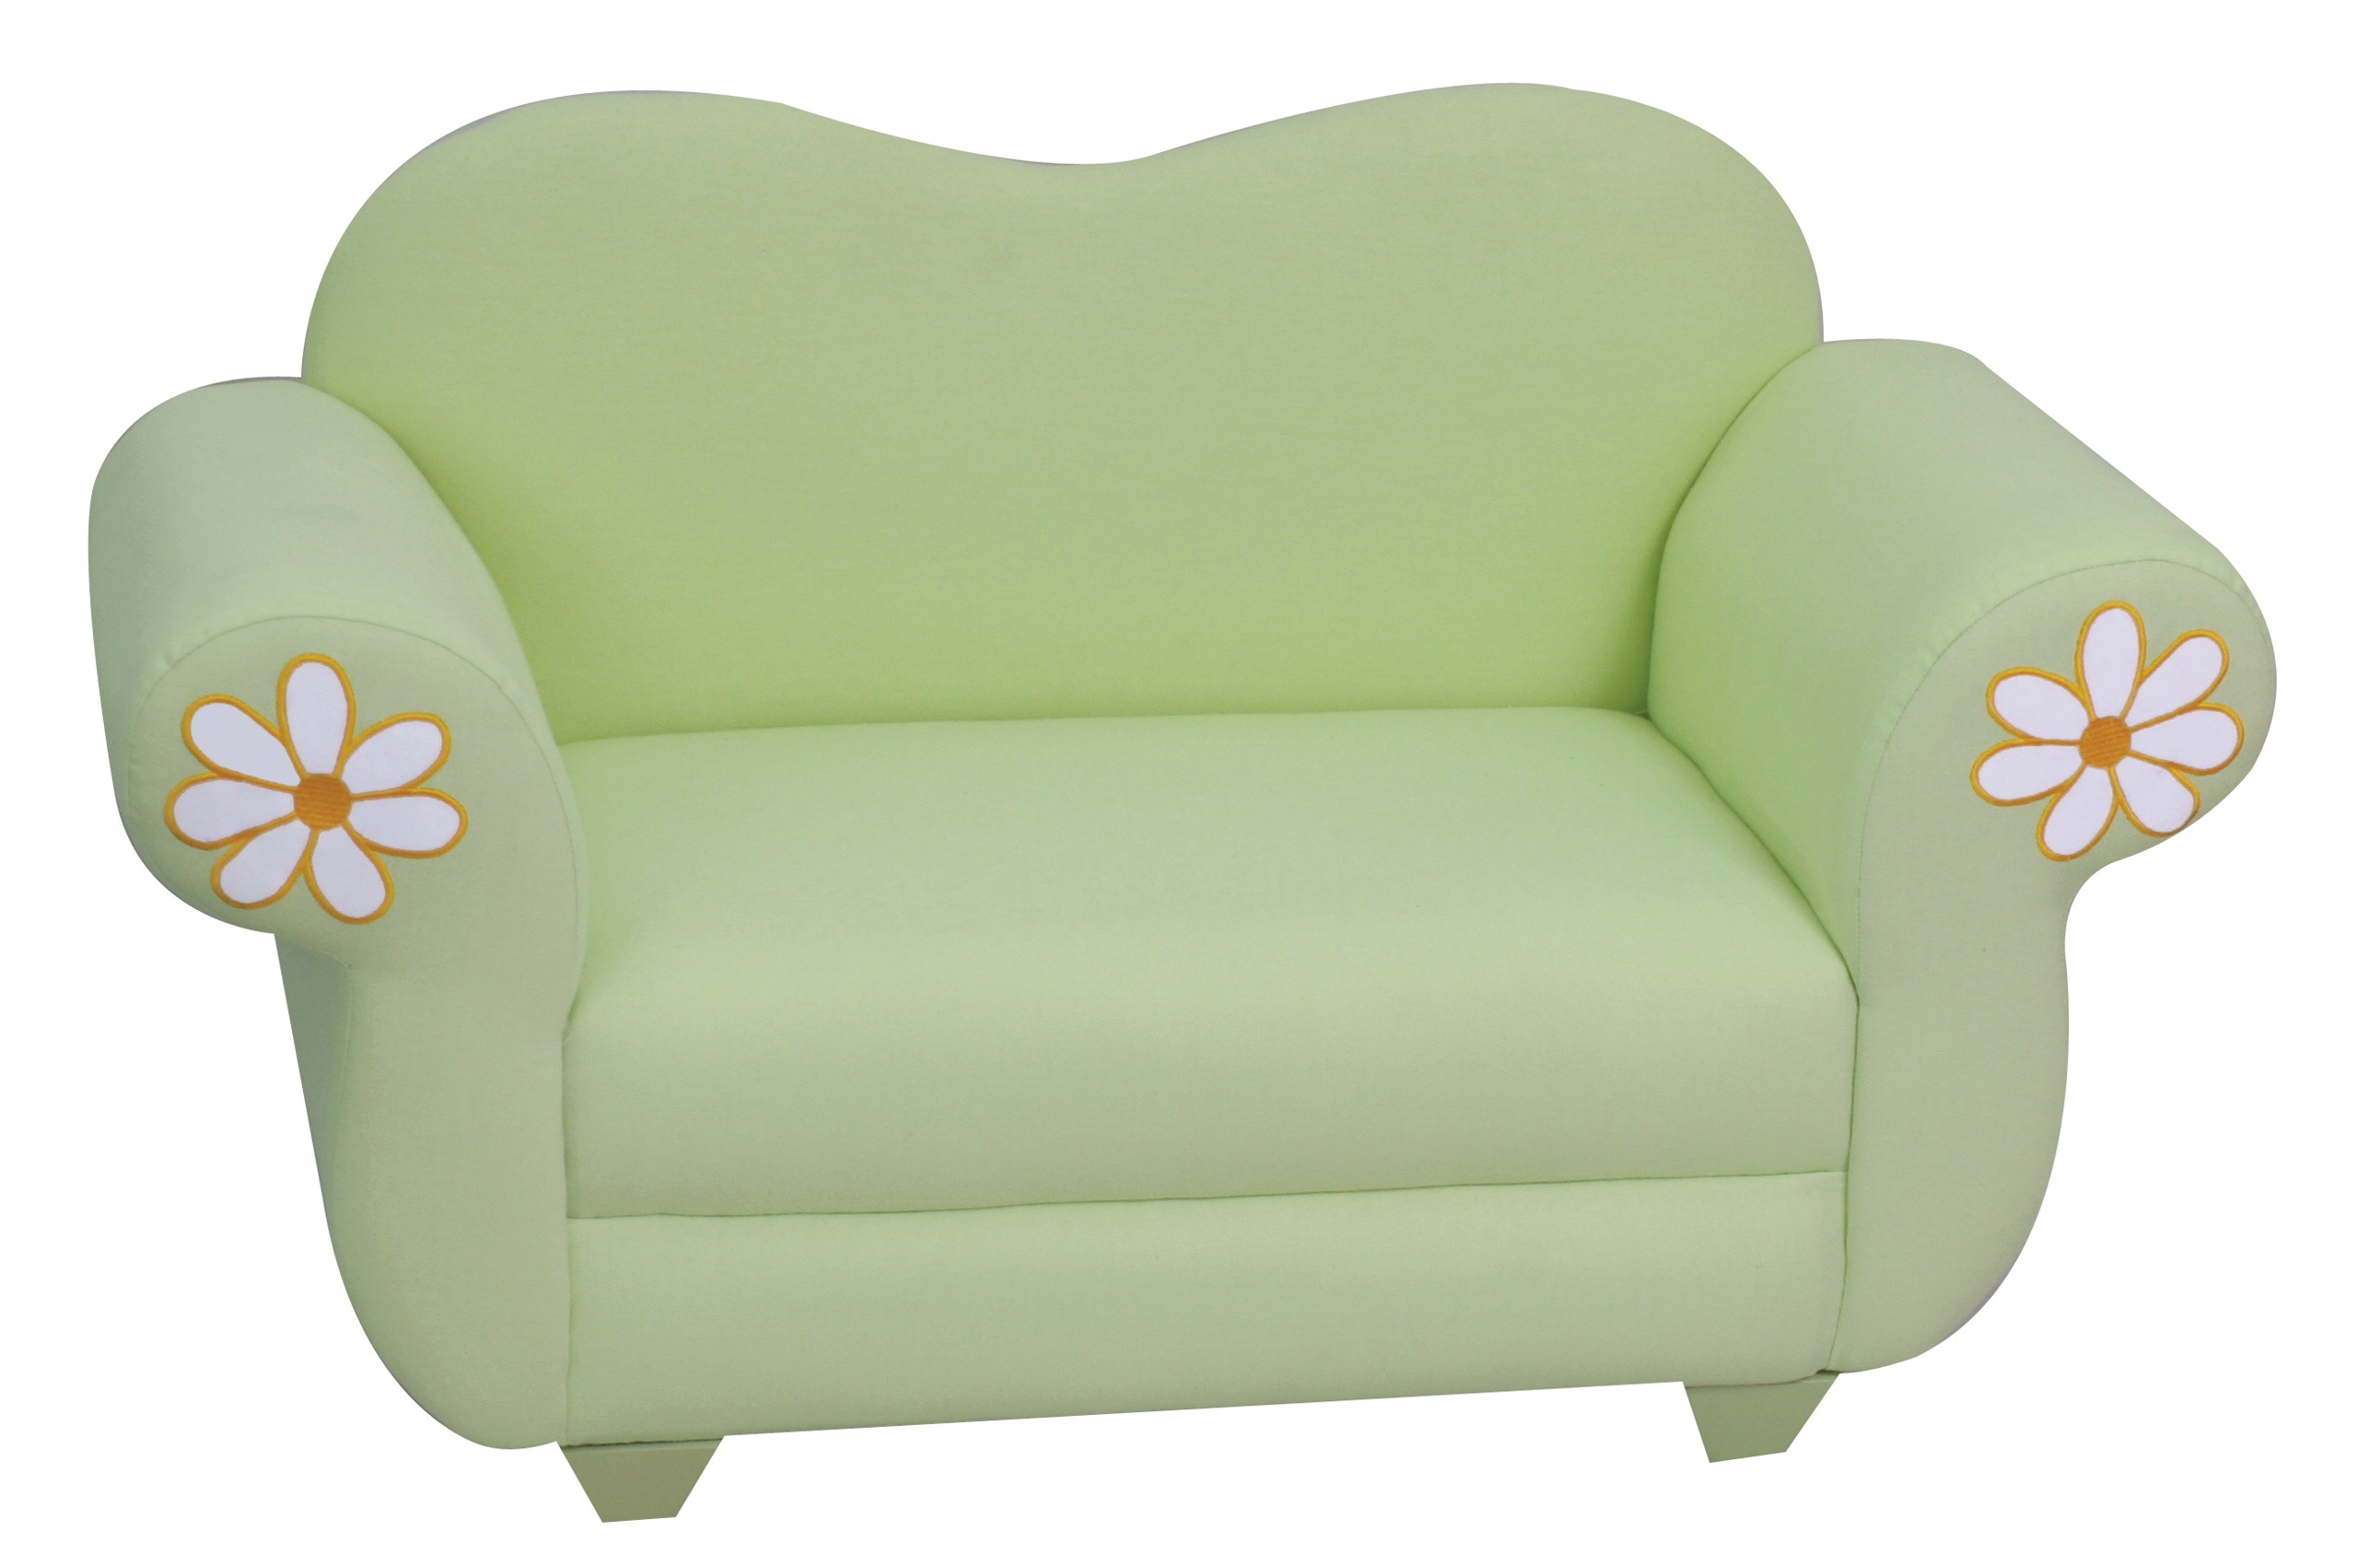 60 Kids Sofa Chair Impressive Sofas For Kids 2 Couch Chair For Regarding Sofa Chairs For Bedroom (Image 1 of 15)